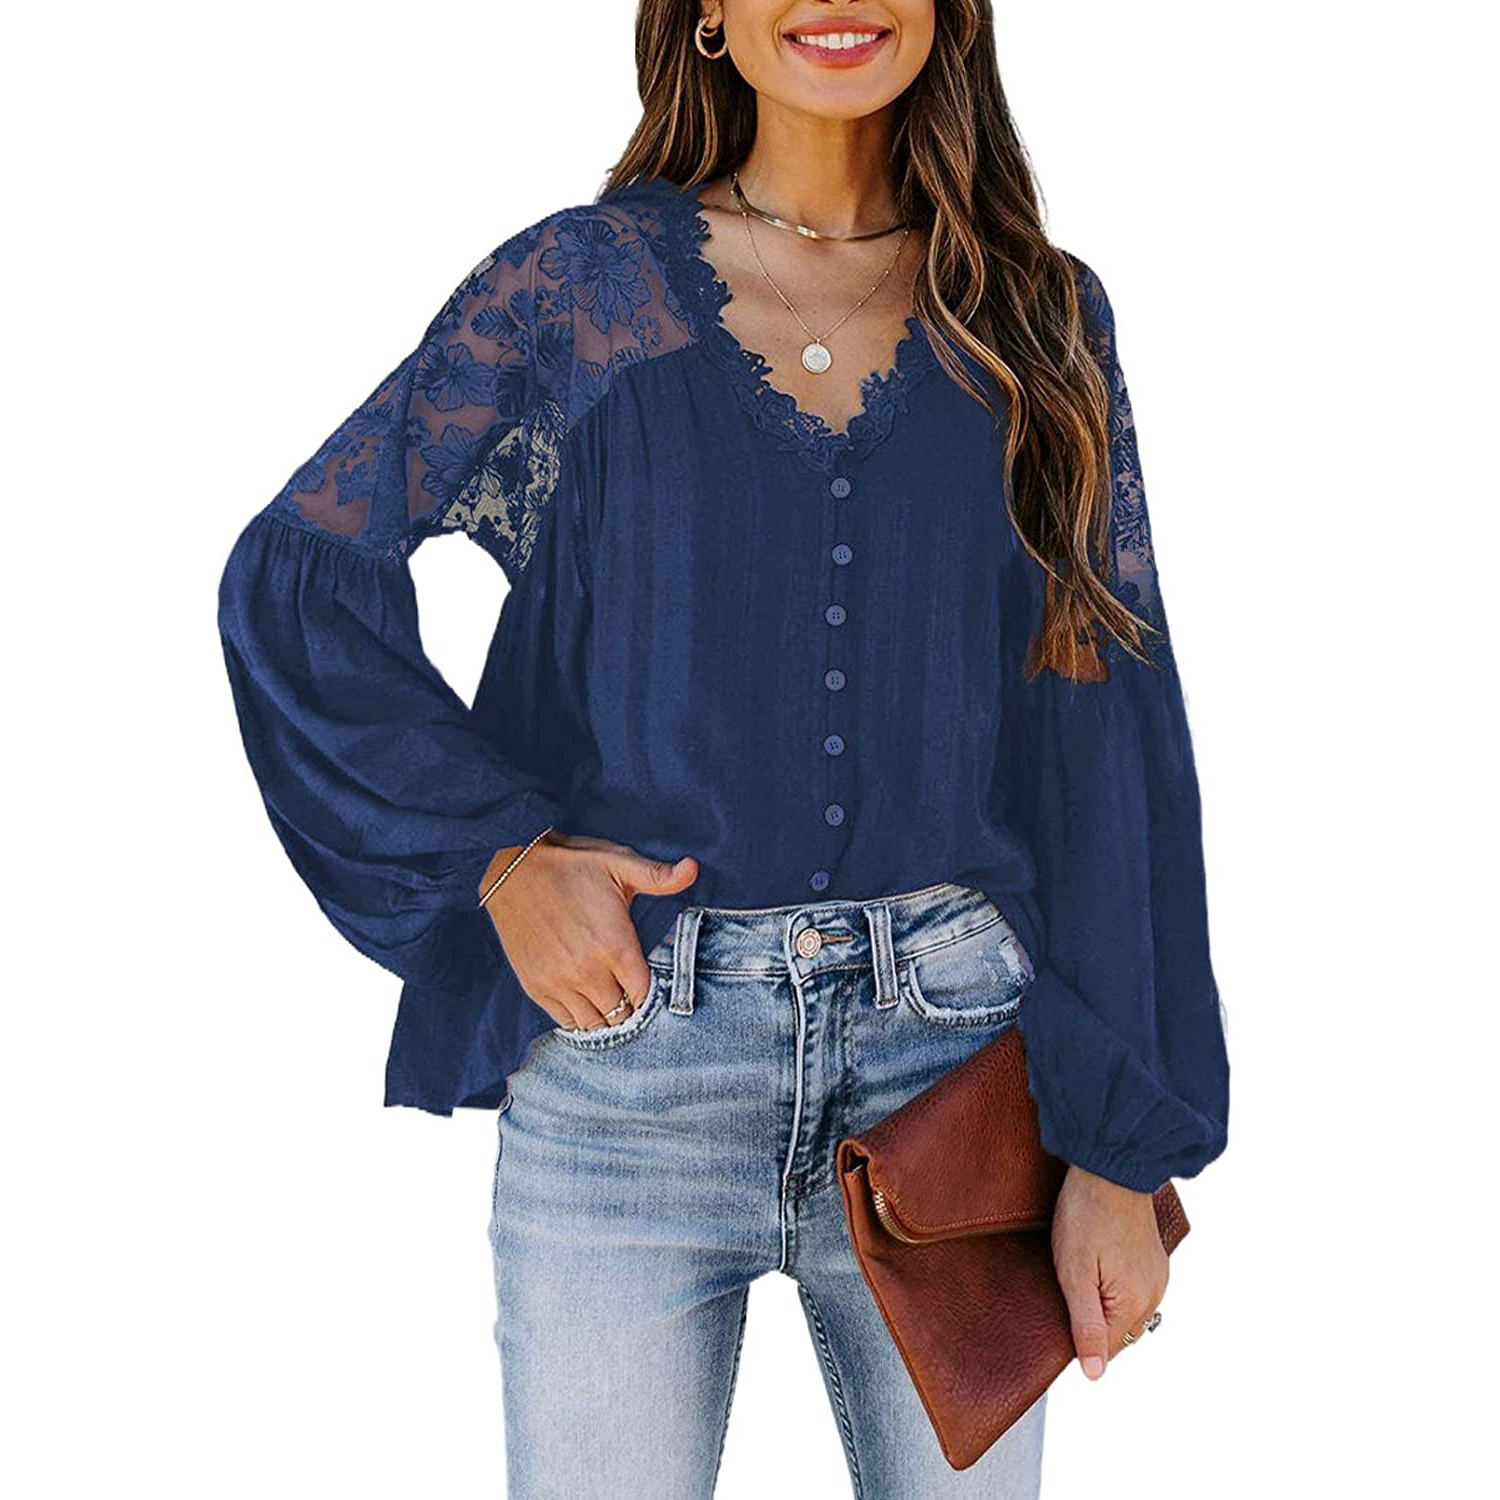 Canikat v-neck lace crochet blouse